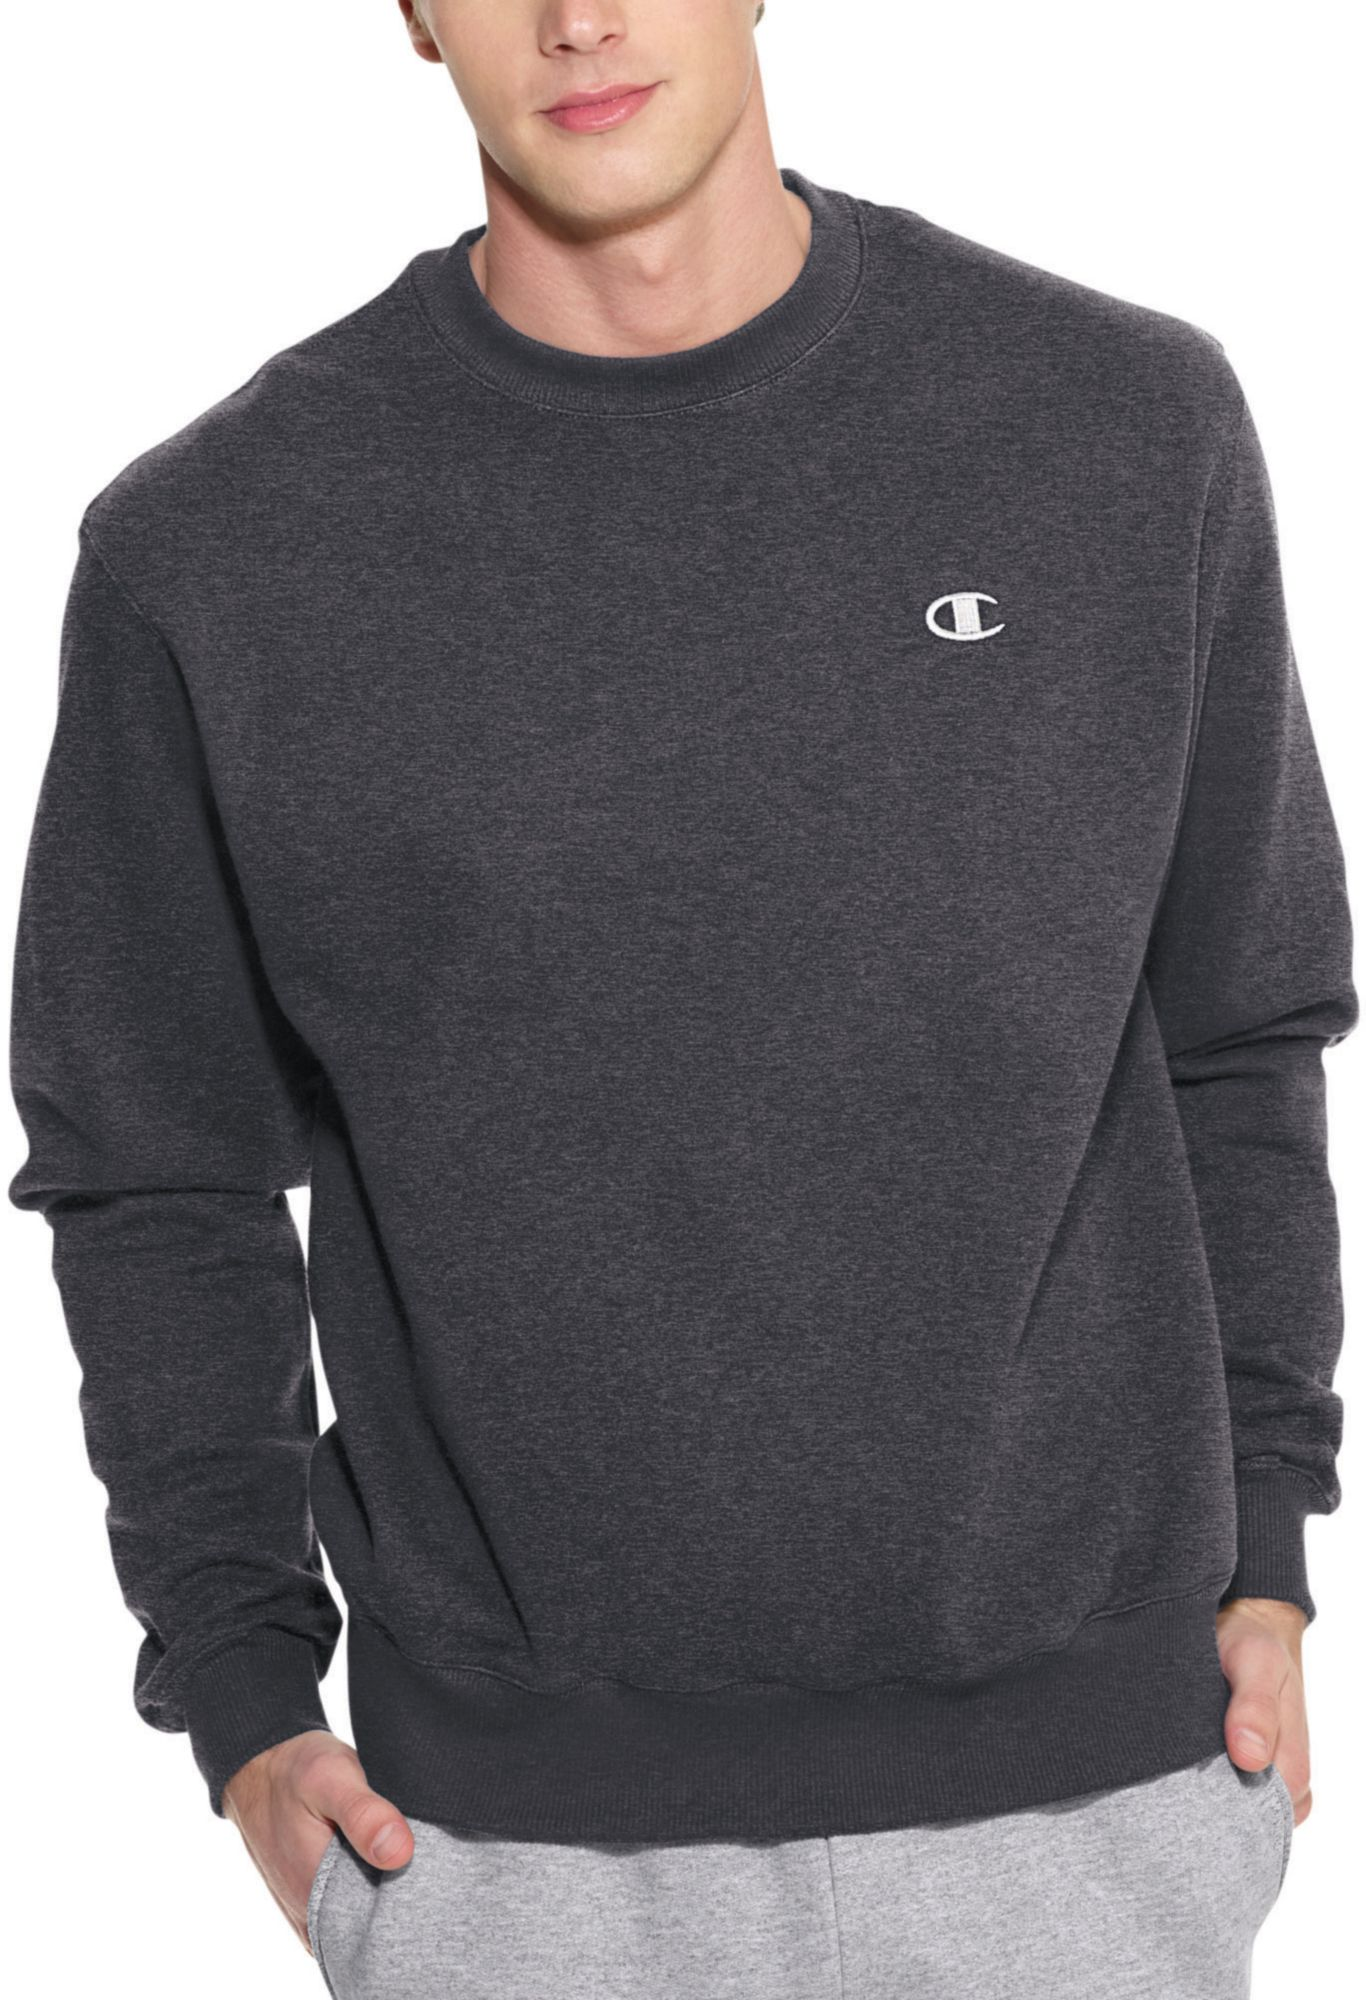 Champion Crew Neck Sweatshirts - Hazmat Clothing